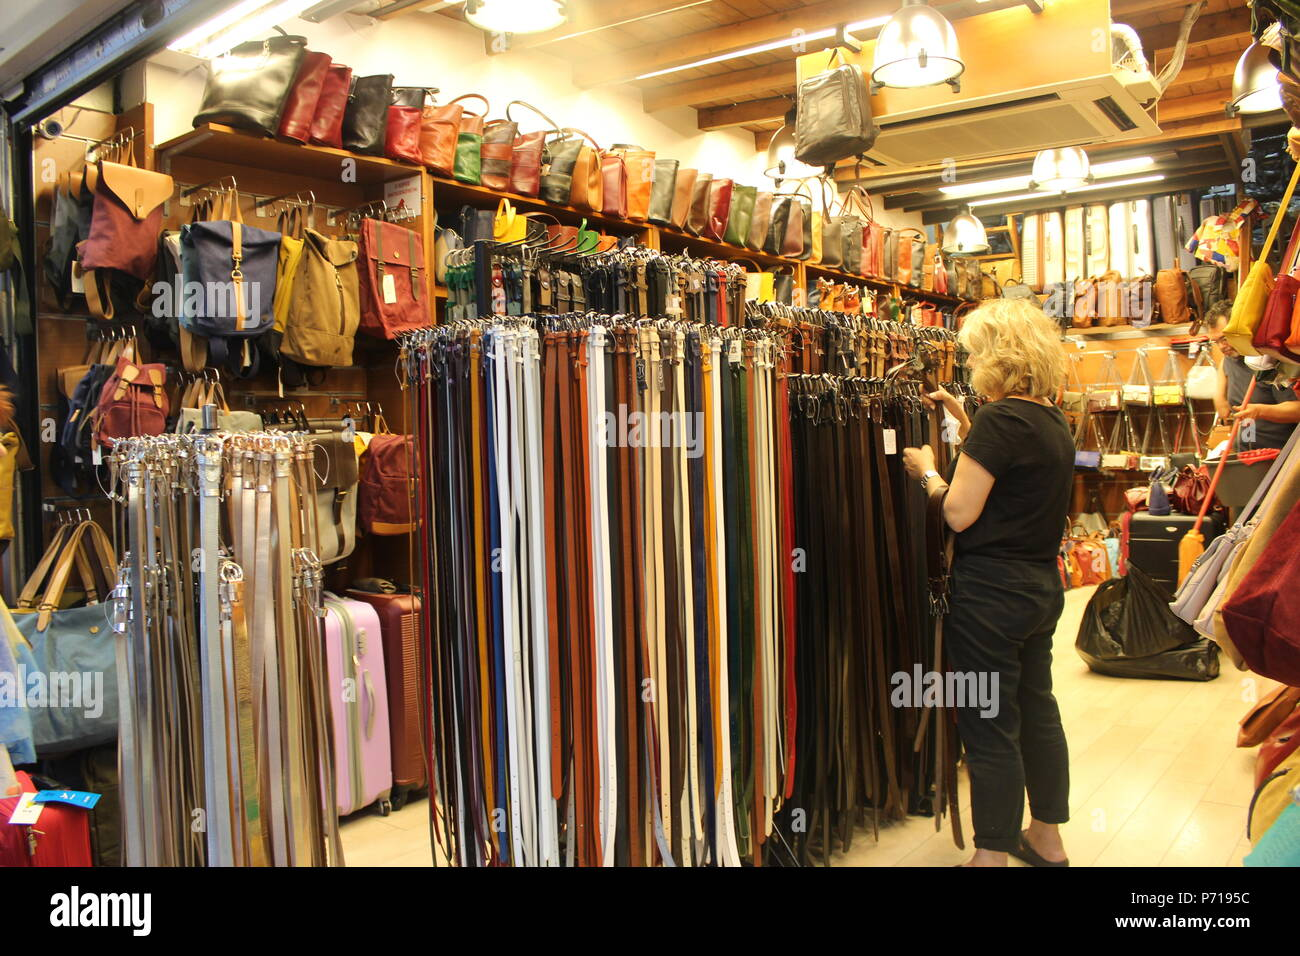 a woman looking at belts in an indoor market stall athens greece - Stock Image